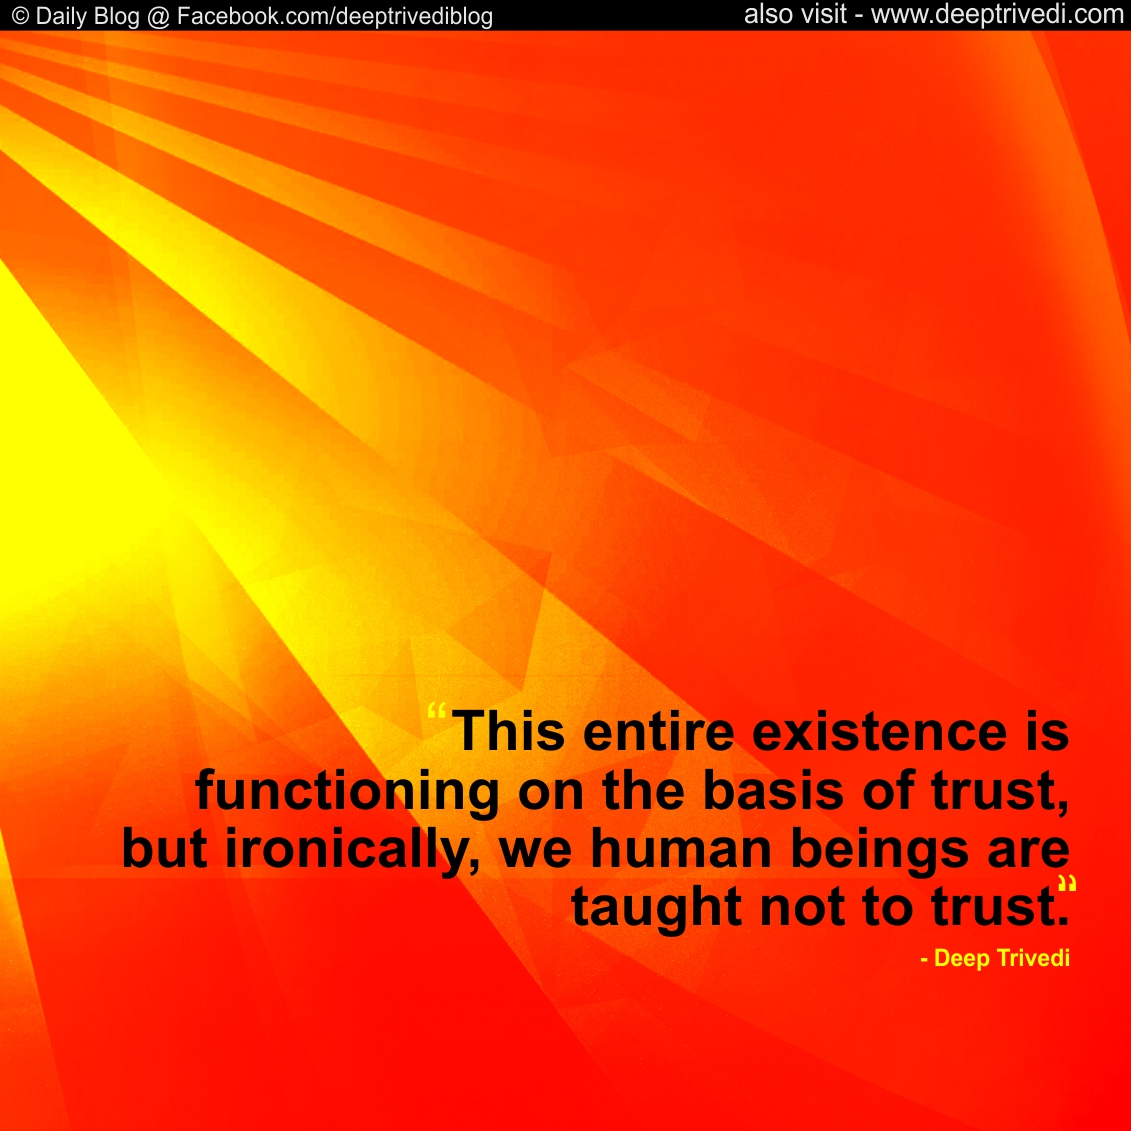 Entire existence is functioning on the basis of trust